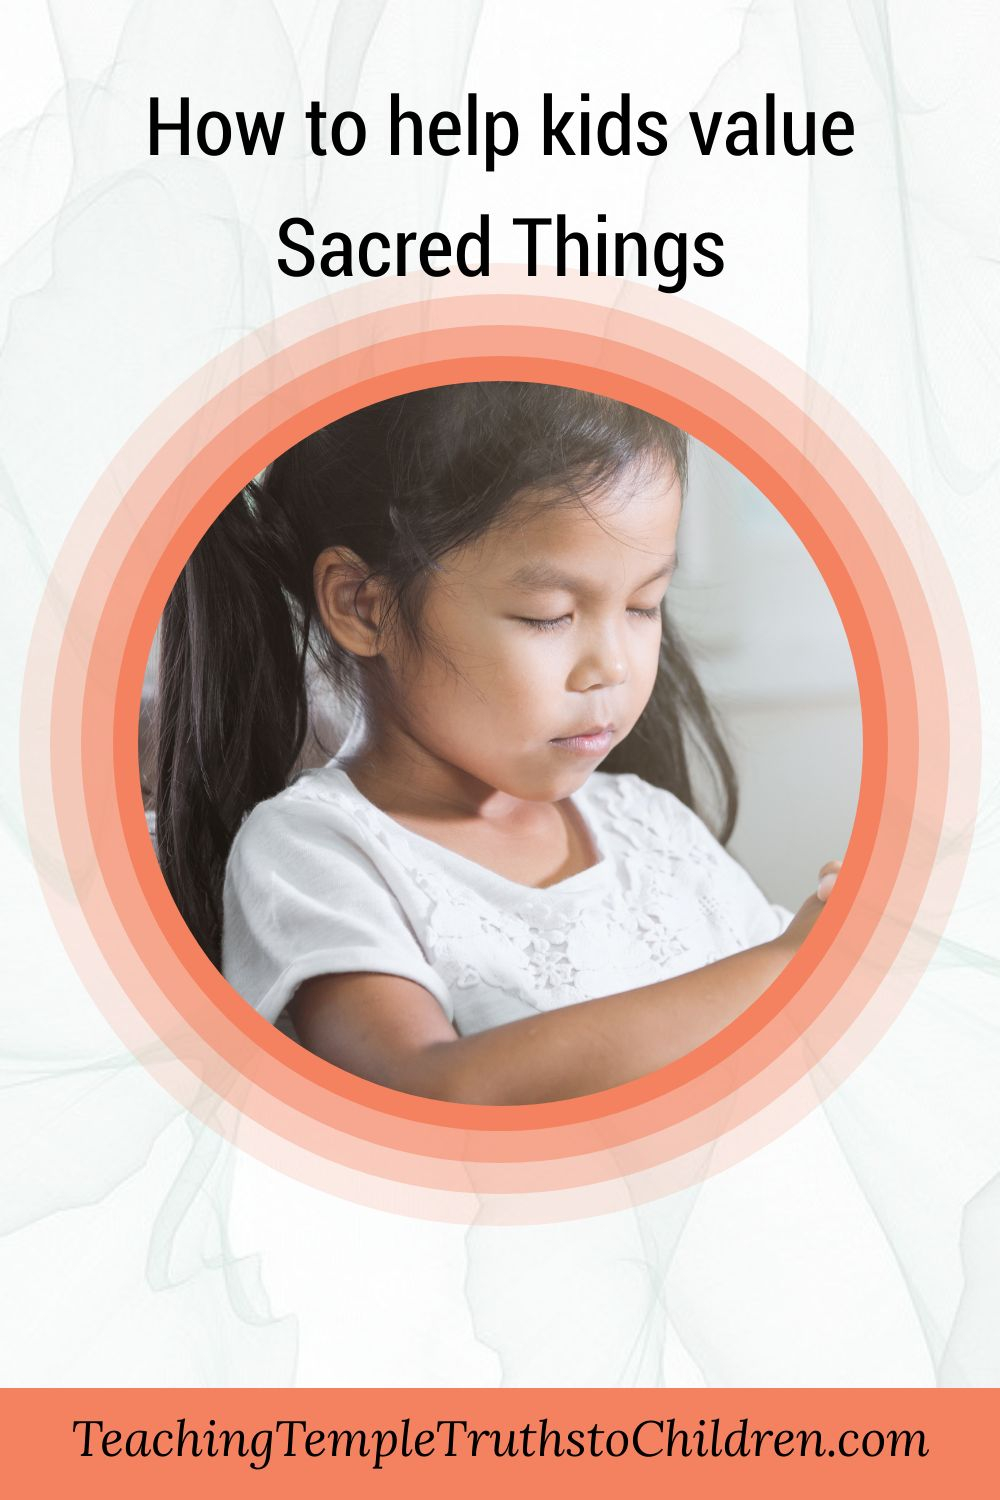 How to help kids value sacred things